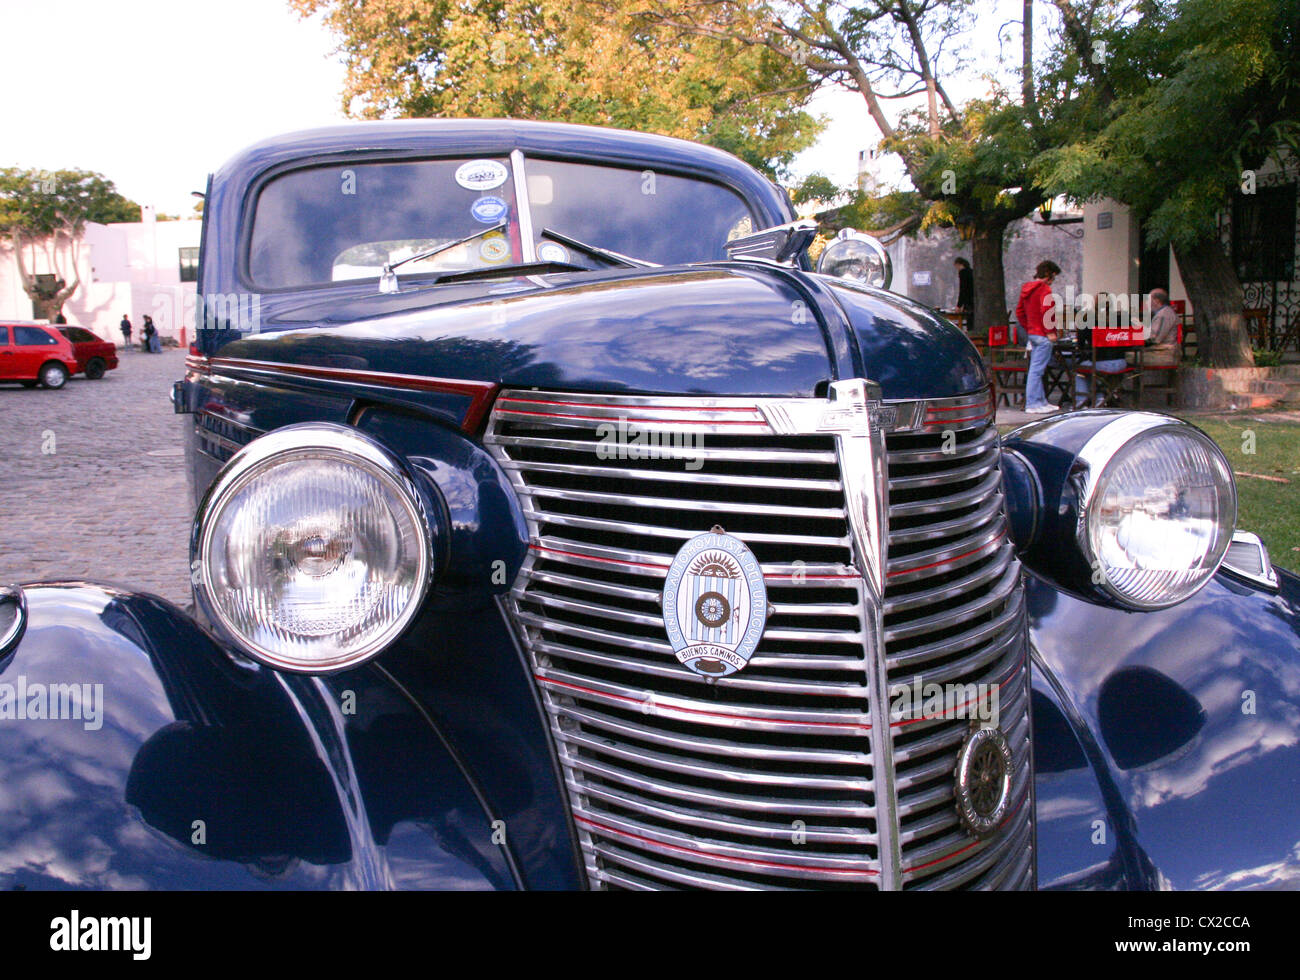 Old time cars in Colonia Uruguay Stock Photo: 50455450 - Alamy